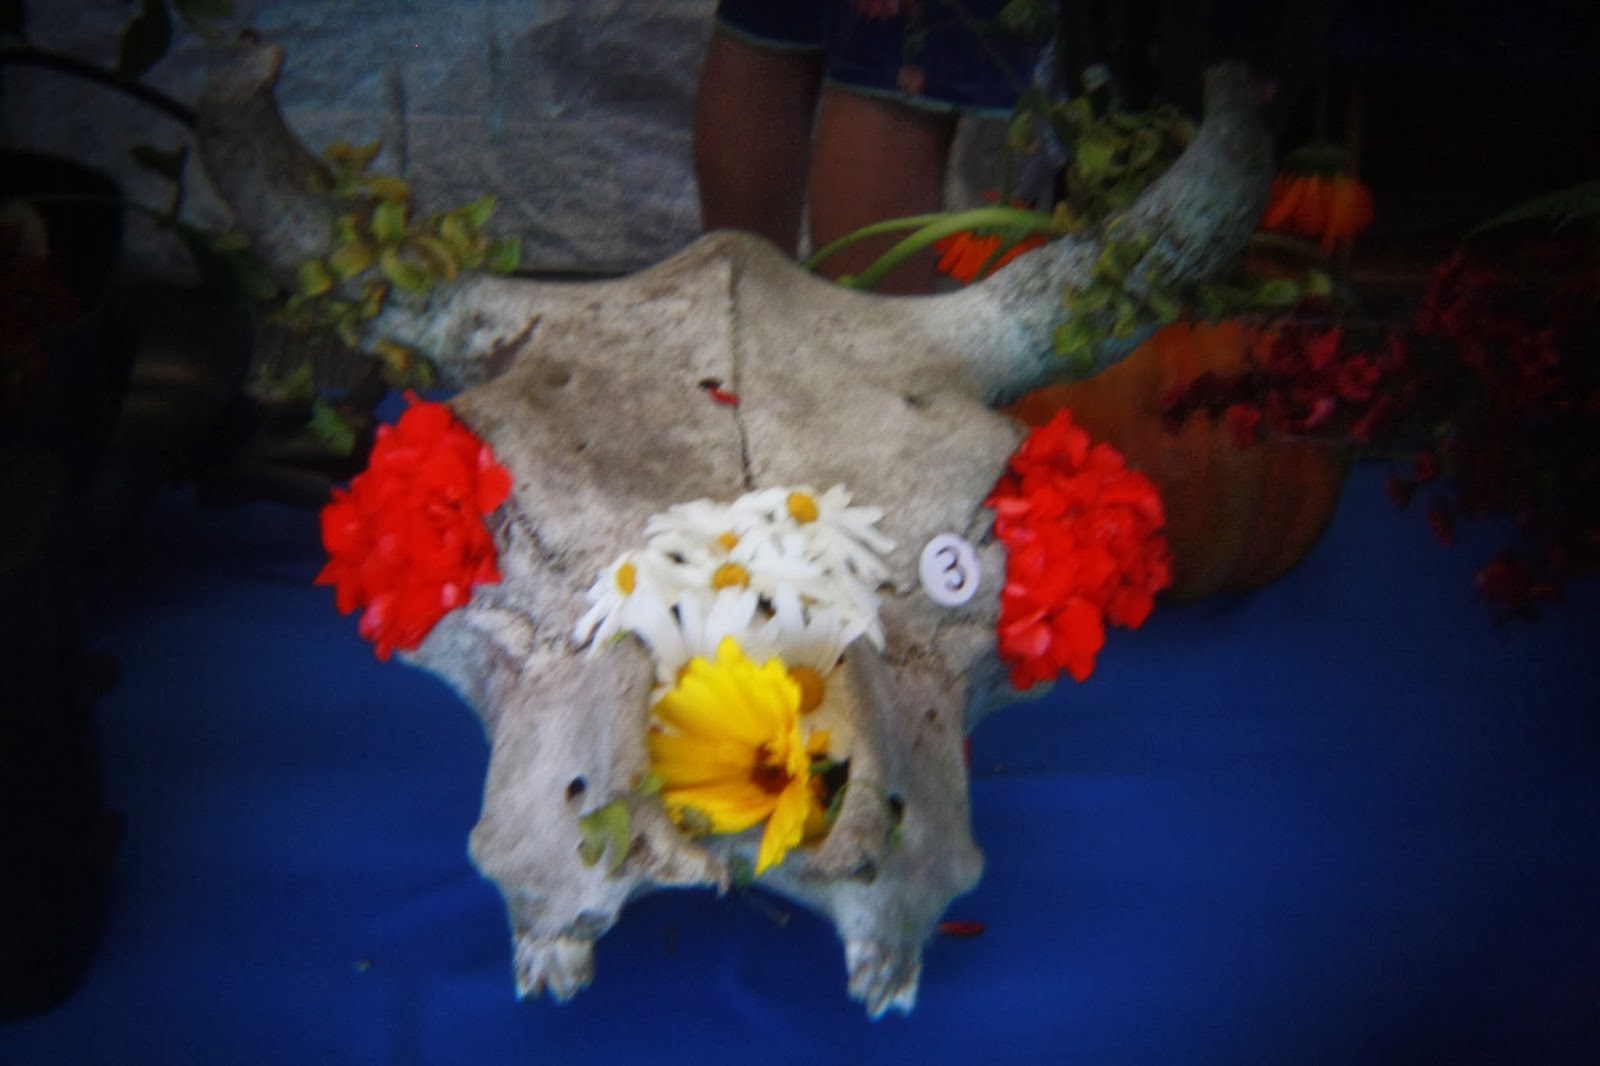 Flowers arranged in a sheep's scull.